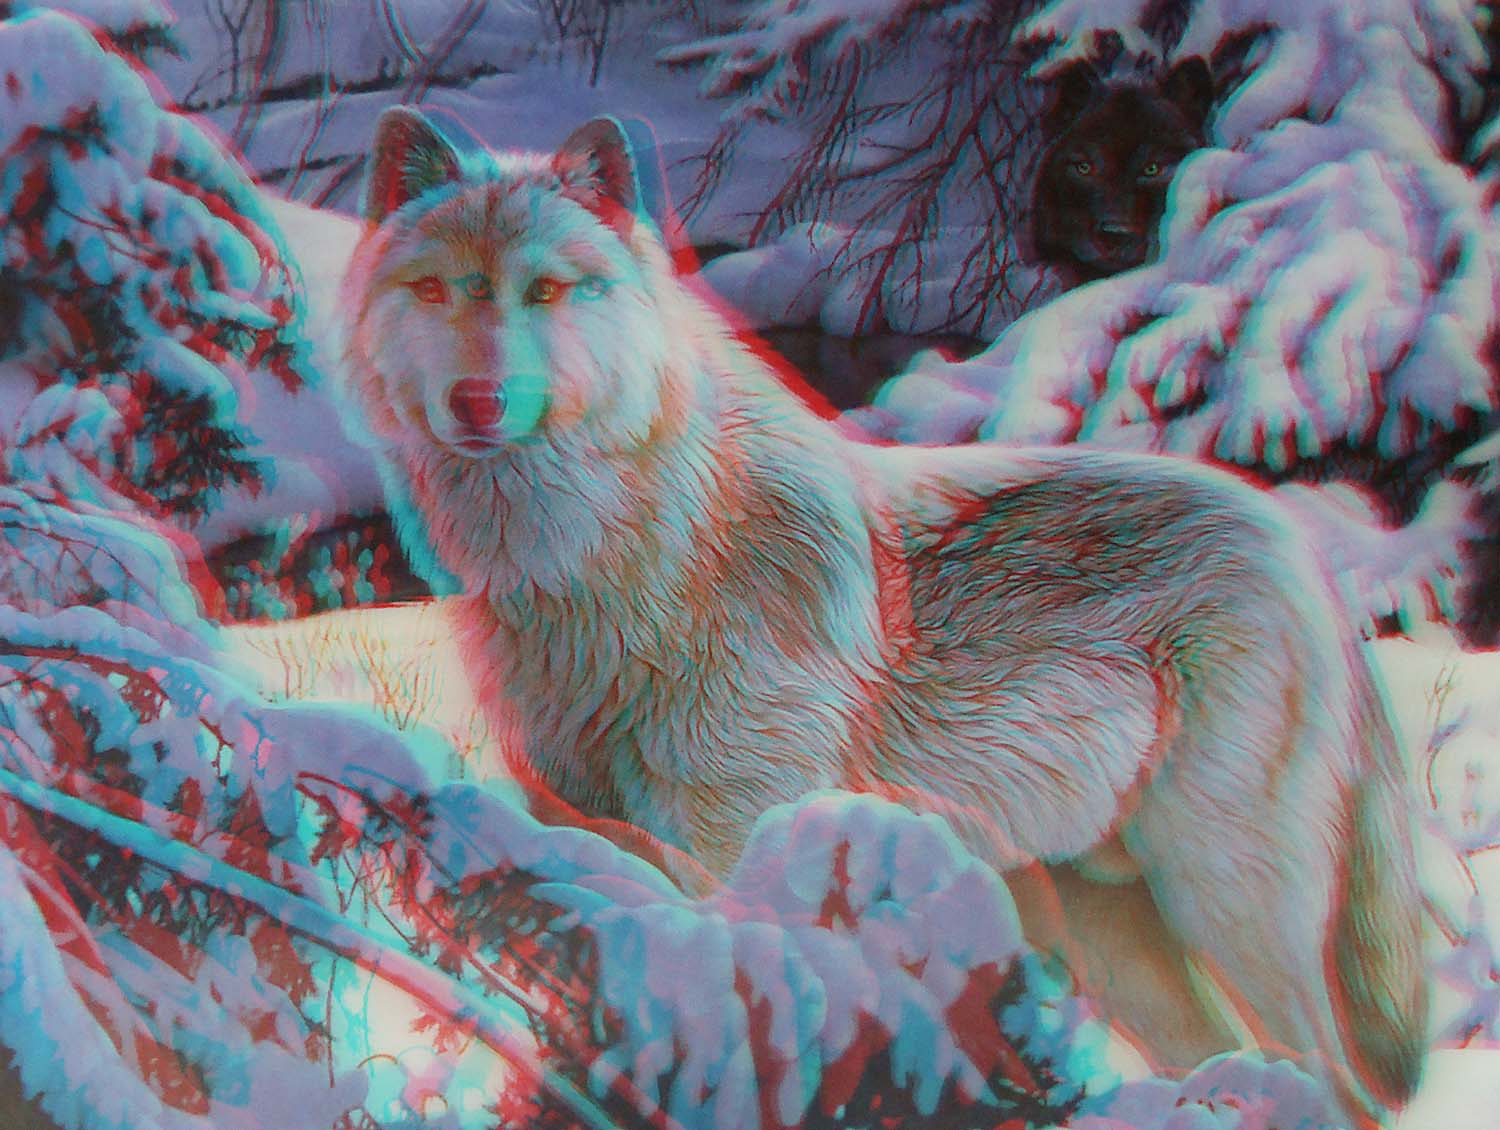 Wolf-in-Snow-Faithful-Friends-3D-anaglyph-photograph